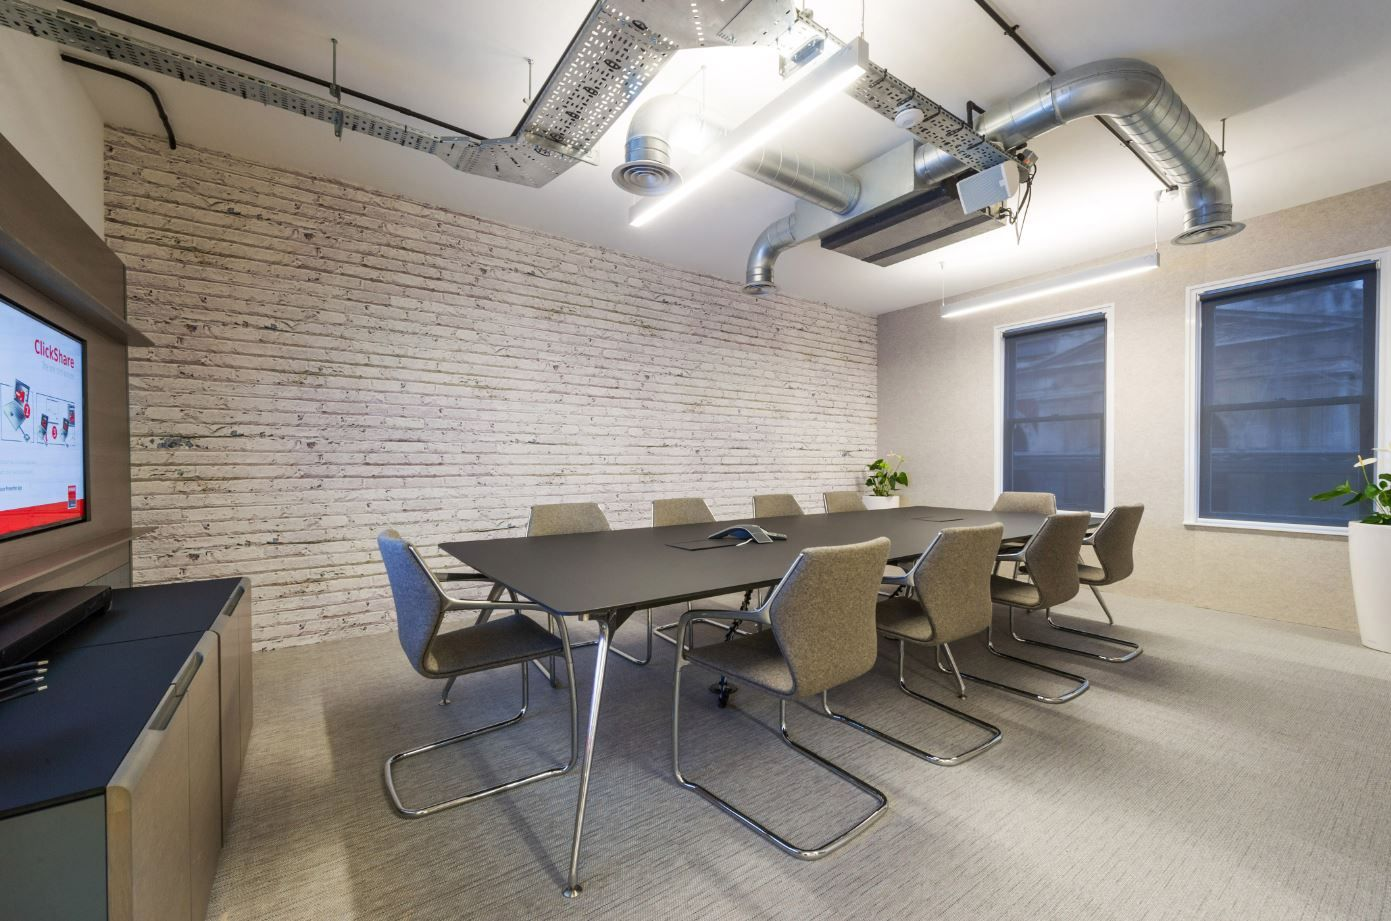 Fenix Aanrechtblad Nanotechnologie : Omega boardroom table in fenix ntm with omega mediawall in veneer